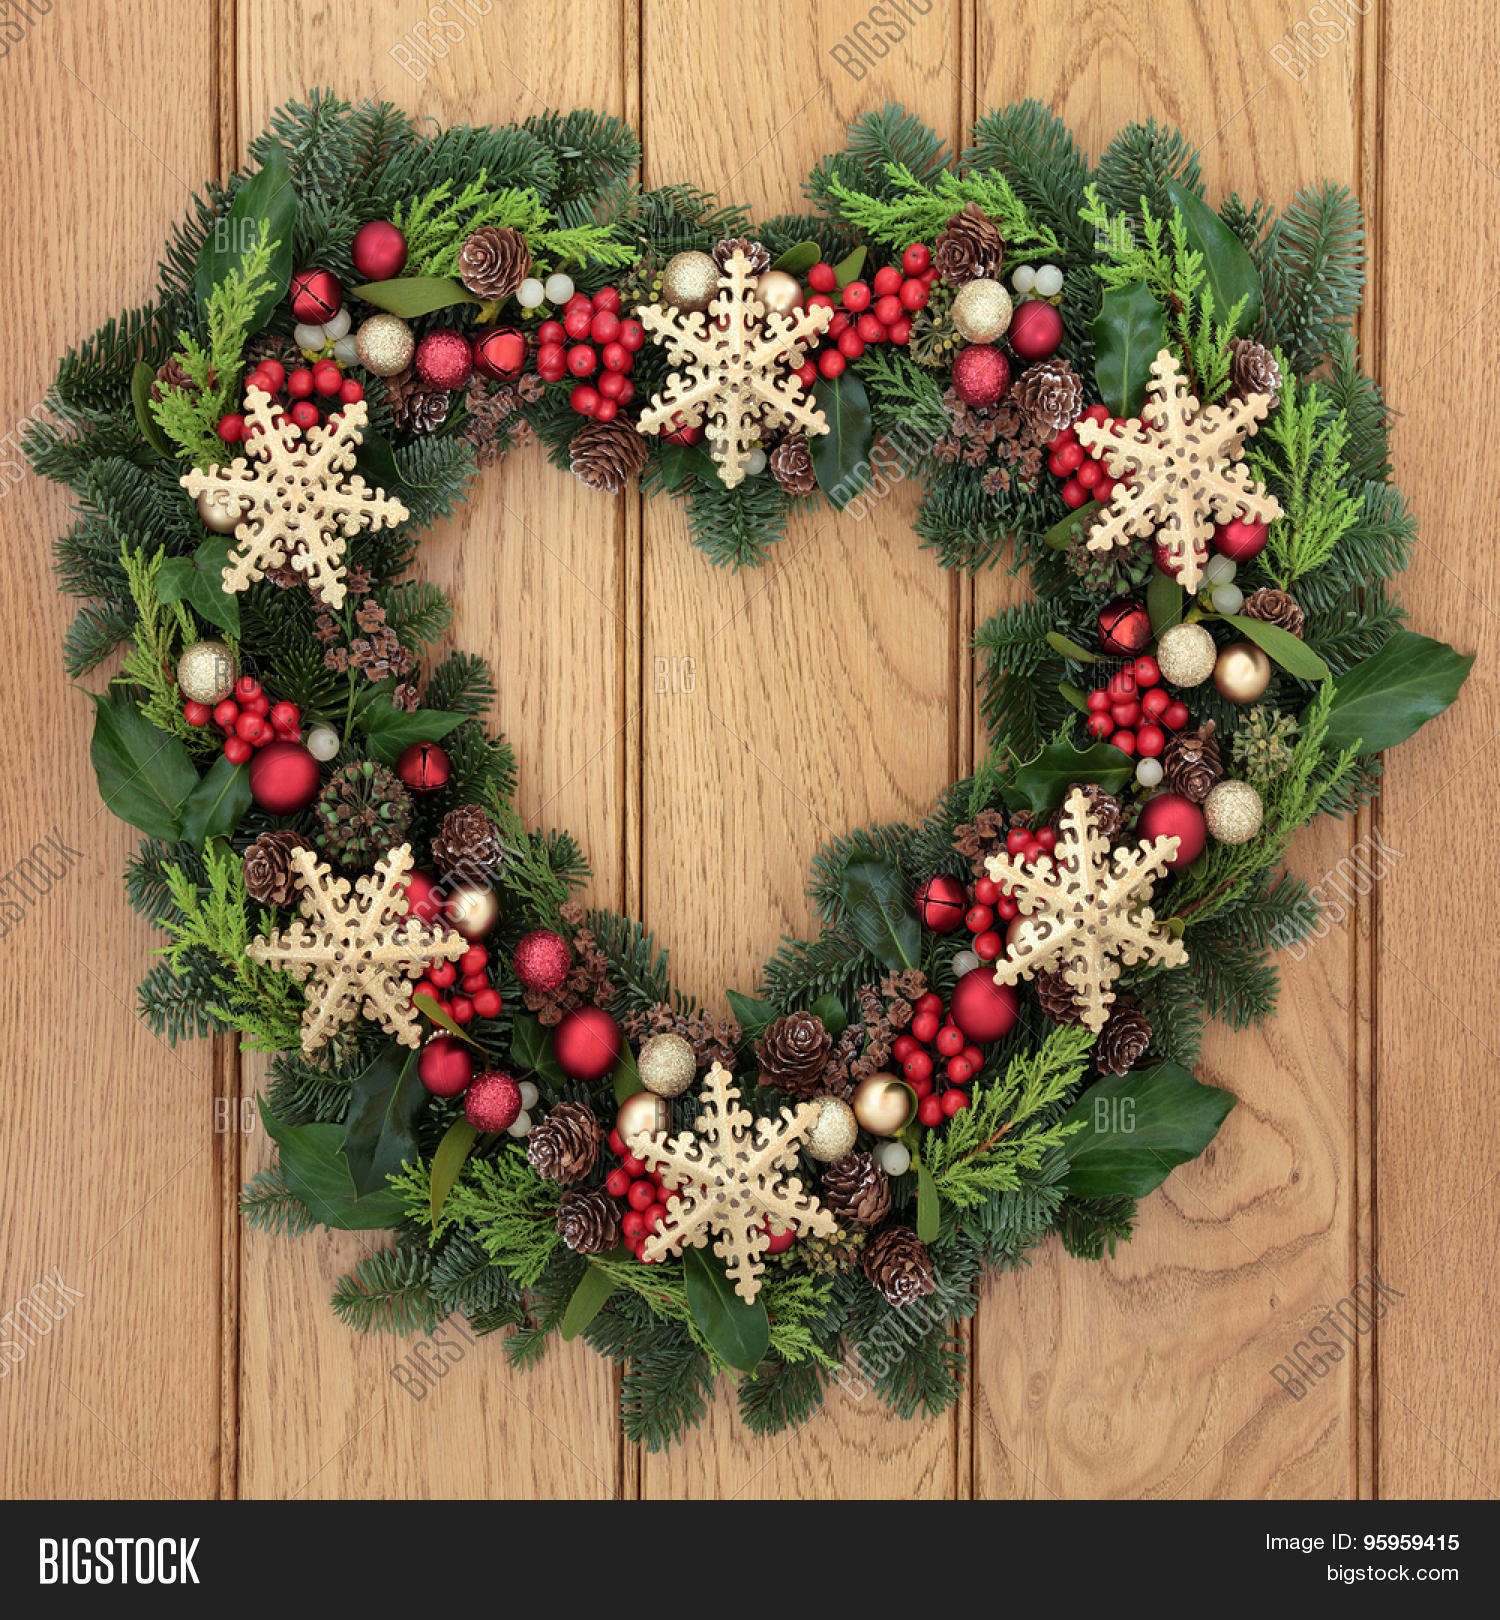 Christmas heart shaped wreath gold image photo bigstock